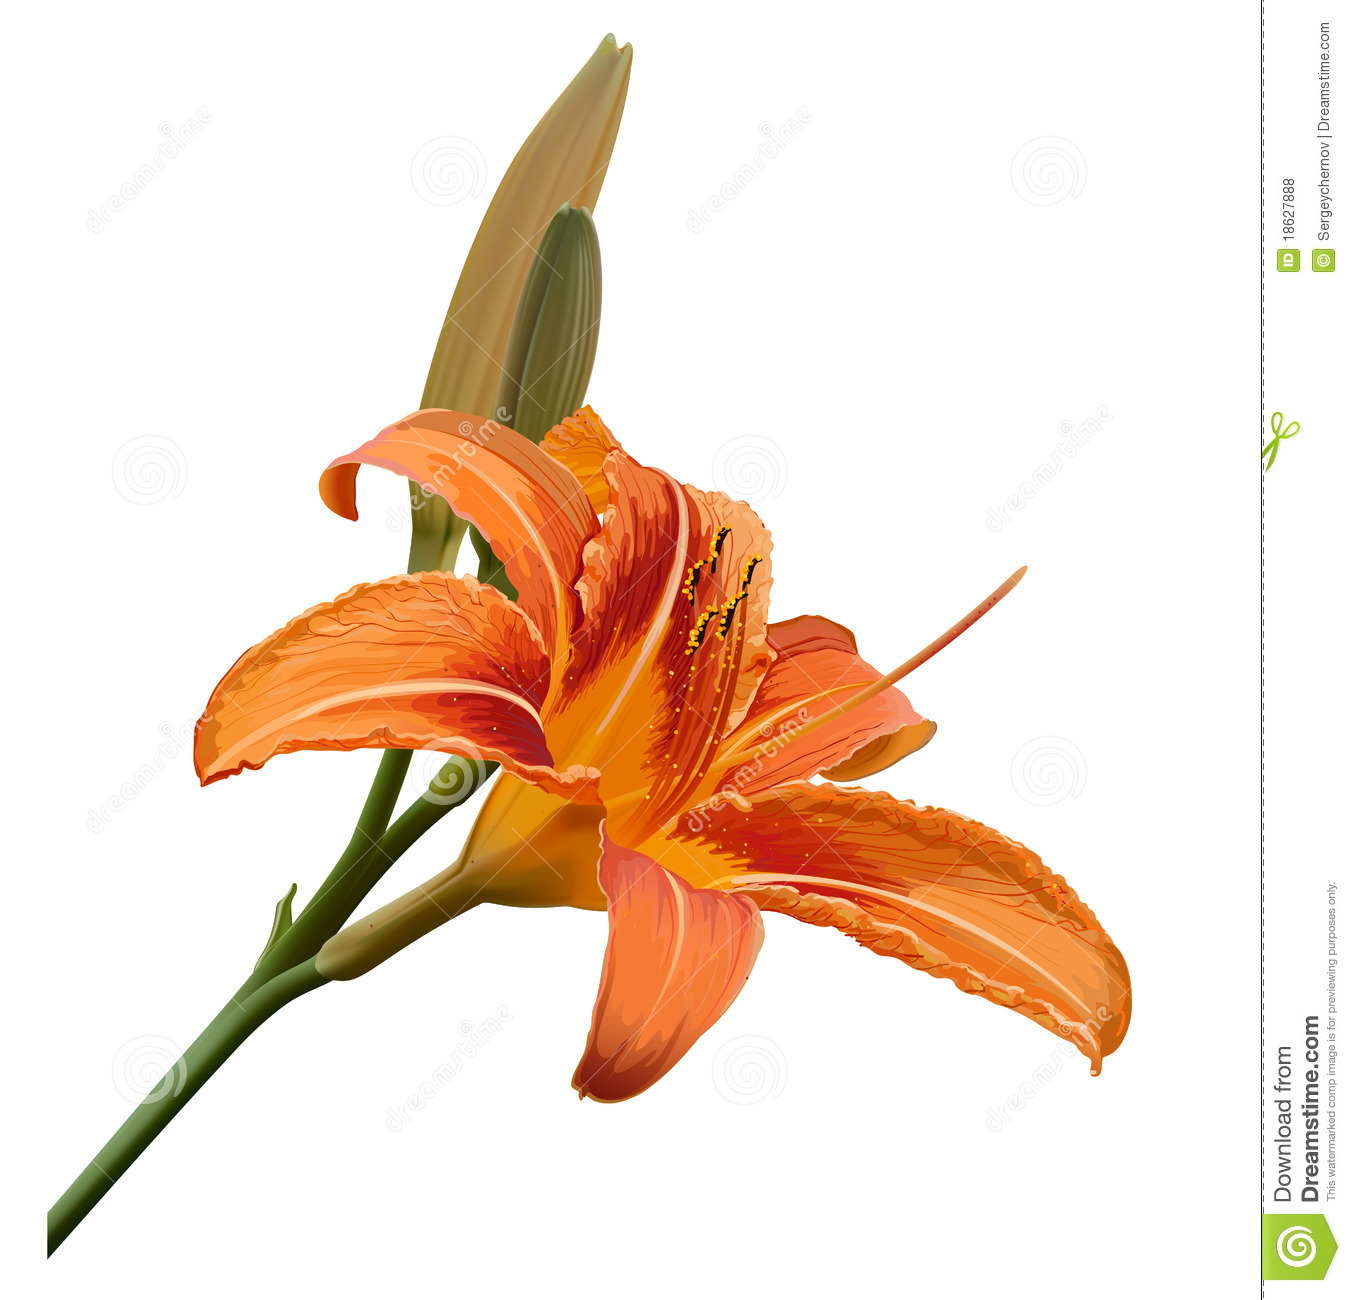 Lily Flower Illustration Royalty Free Stock Photos.